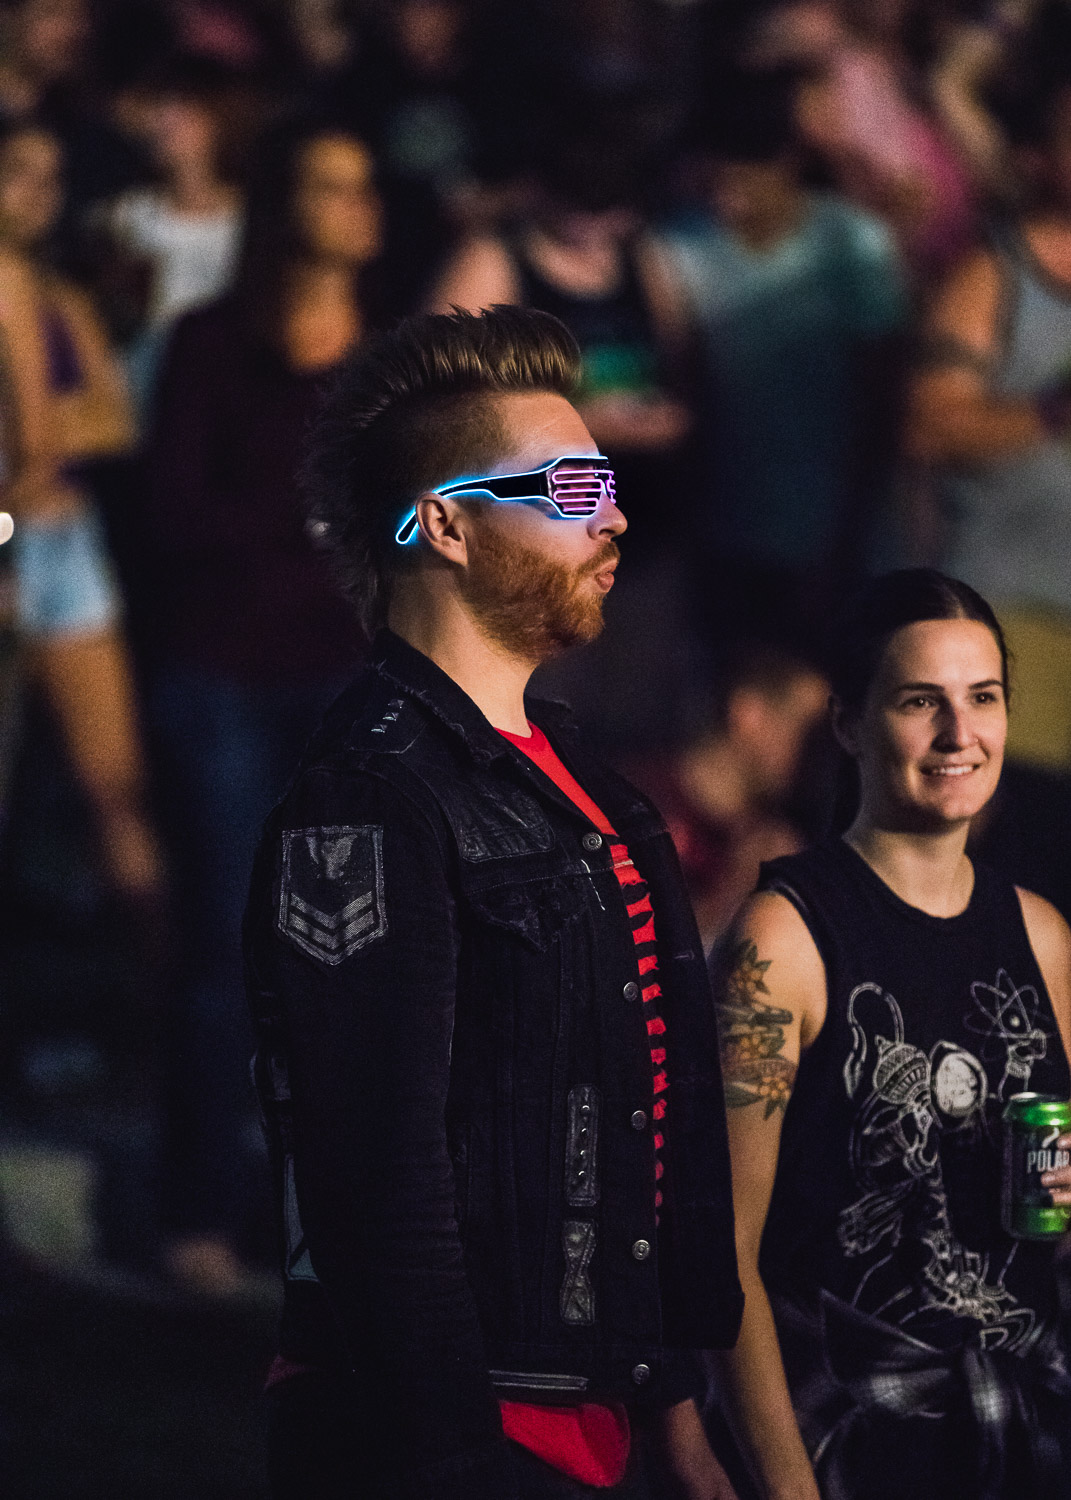 Audience member sports some amazing eyewear for the Robert DeLong show. Photo: Logan Sorenson | Lmsorenson.net